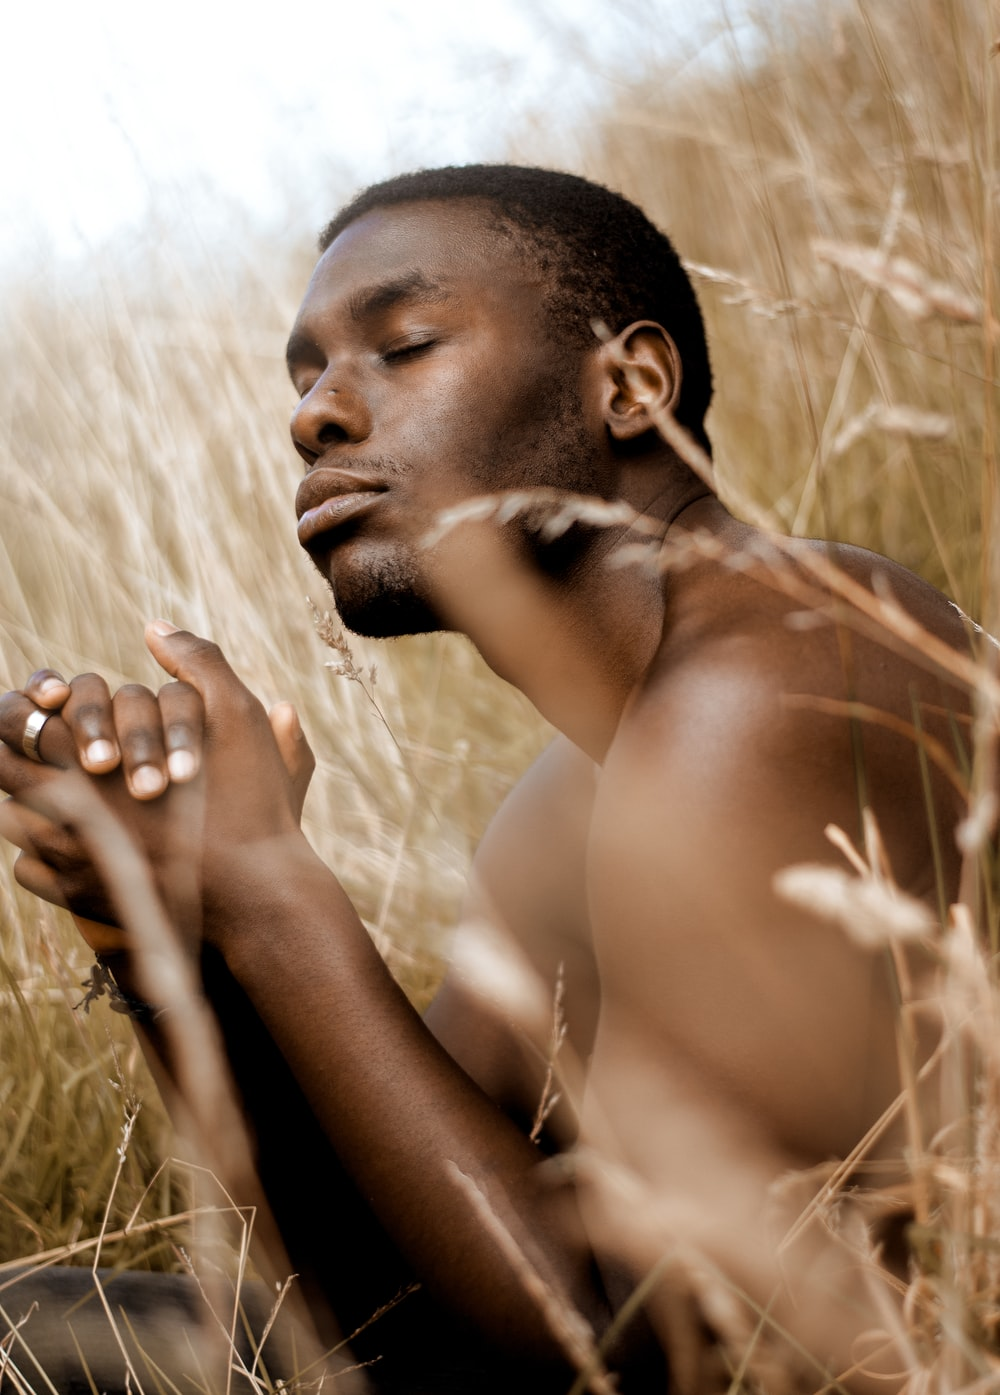 topless man sitting on brown grass field during daytime